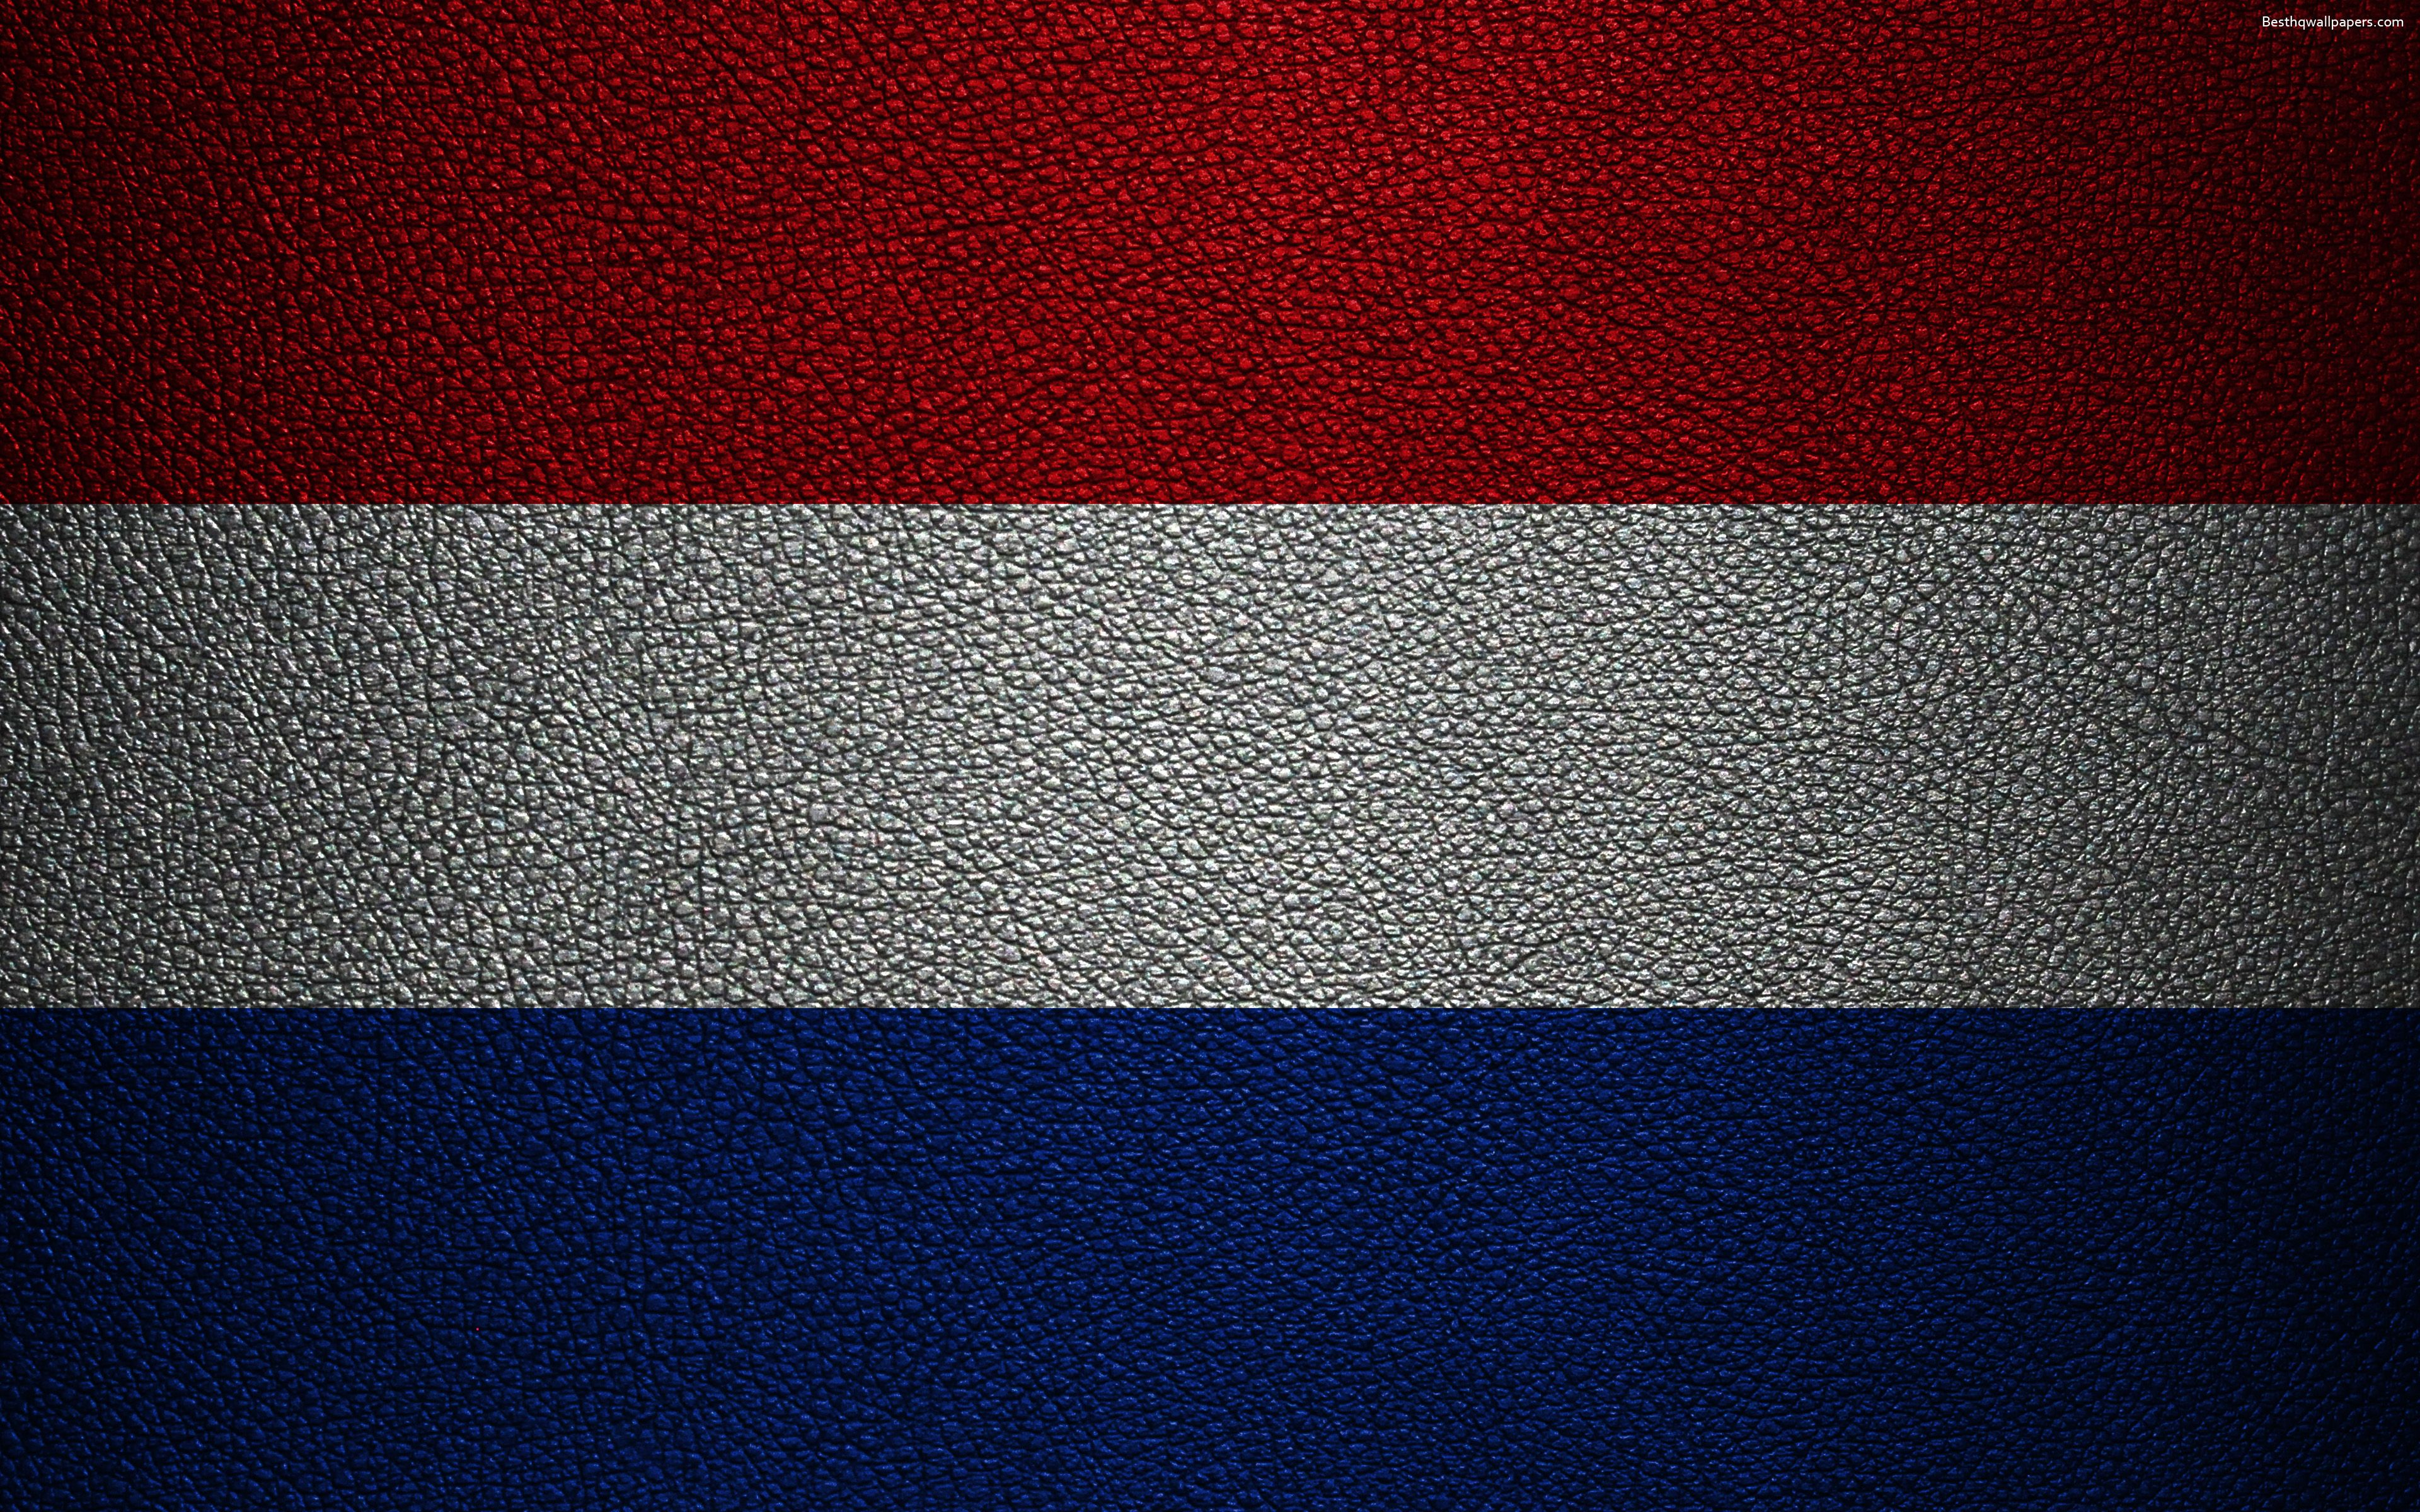 3840x2400 Download wallpapers Flag of the Netherlands, 4k, leather ...